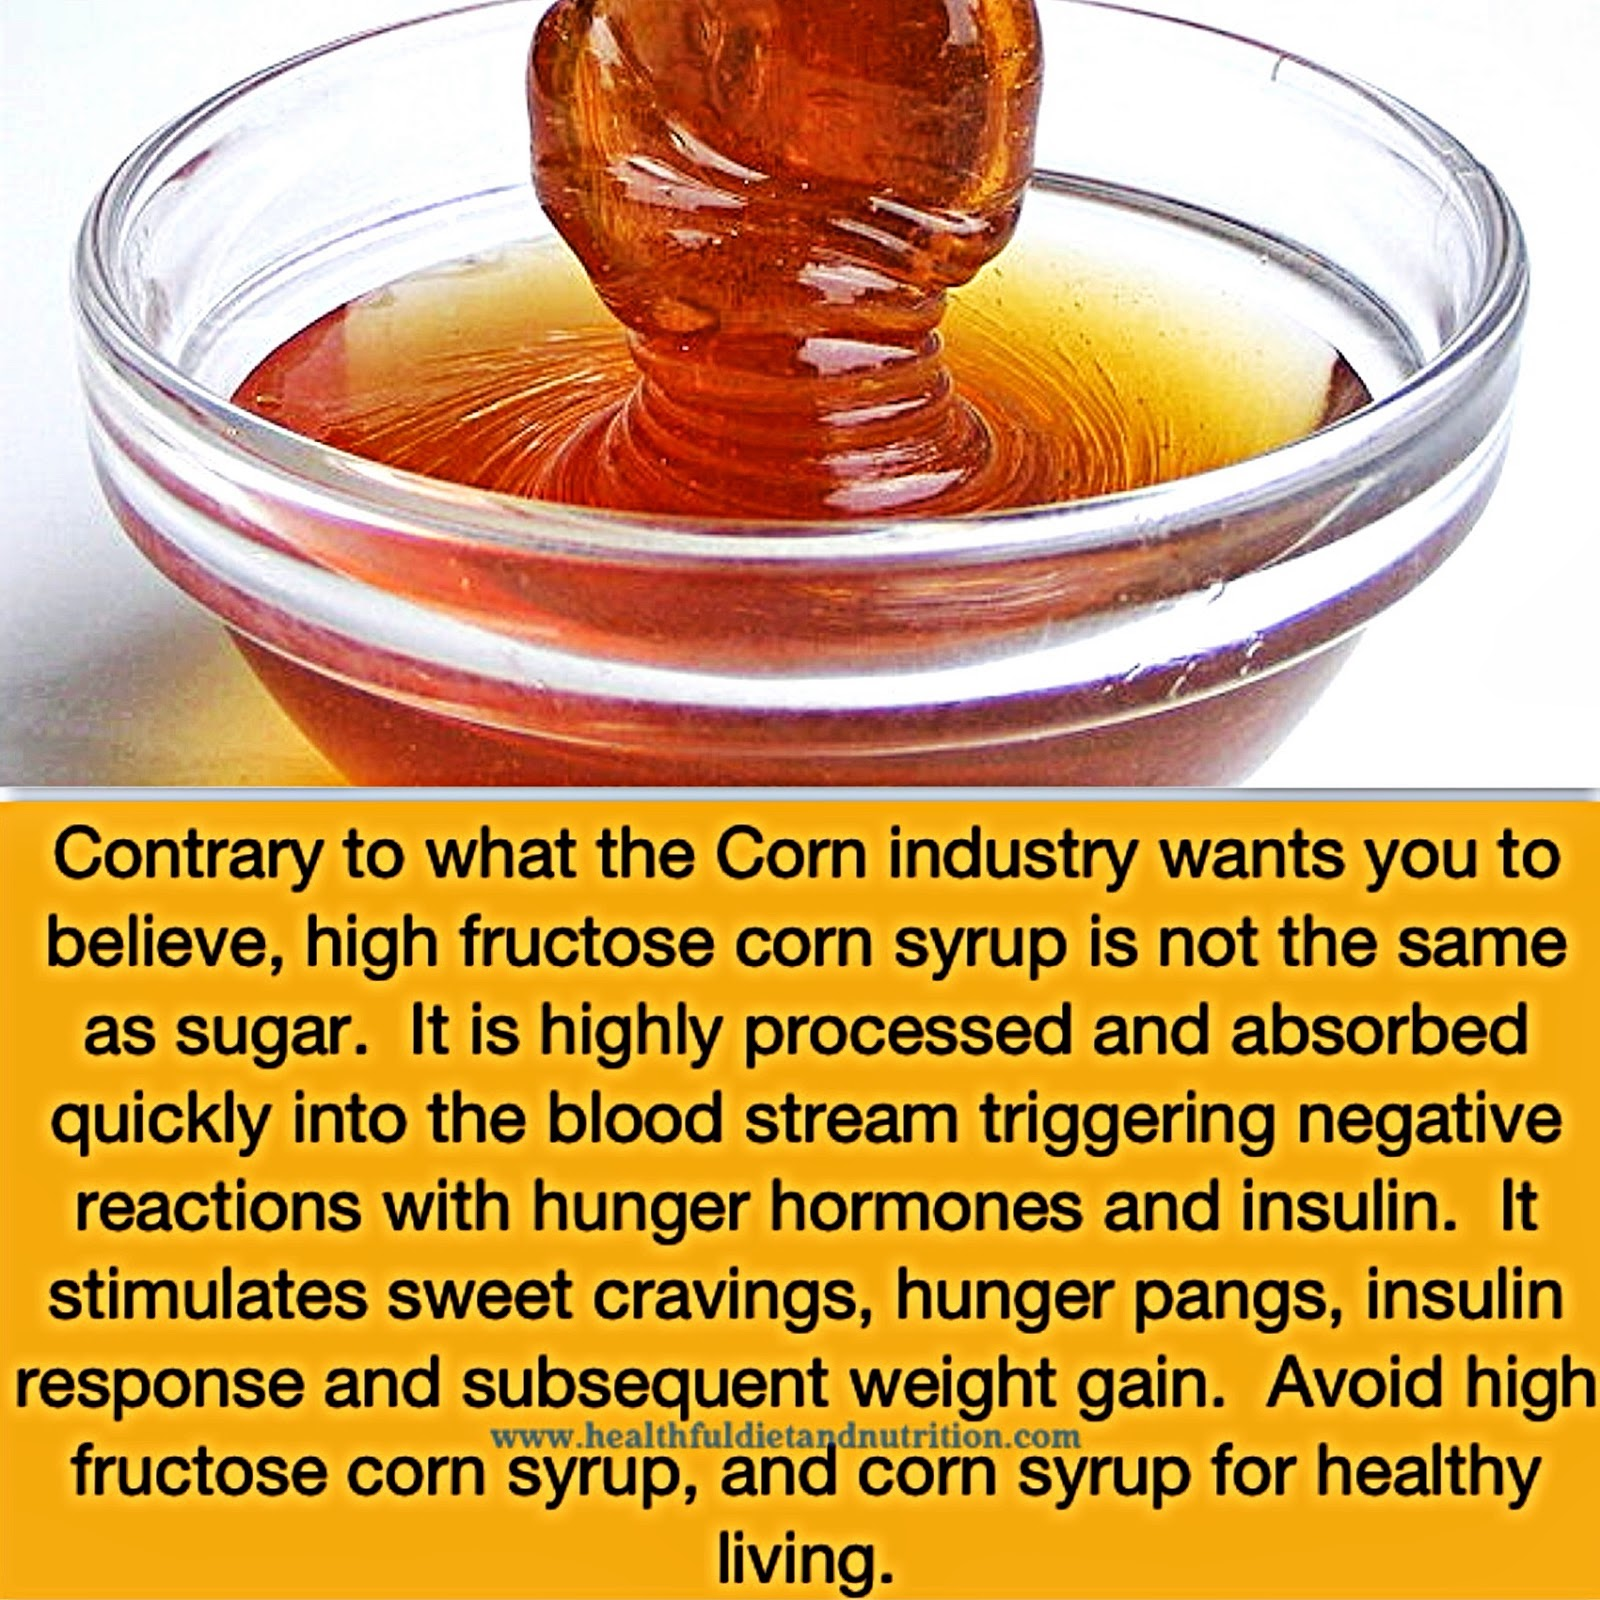 Avoid High Fructose Corn Syrup and Corn Syrup